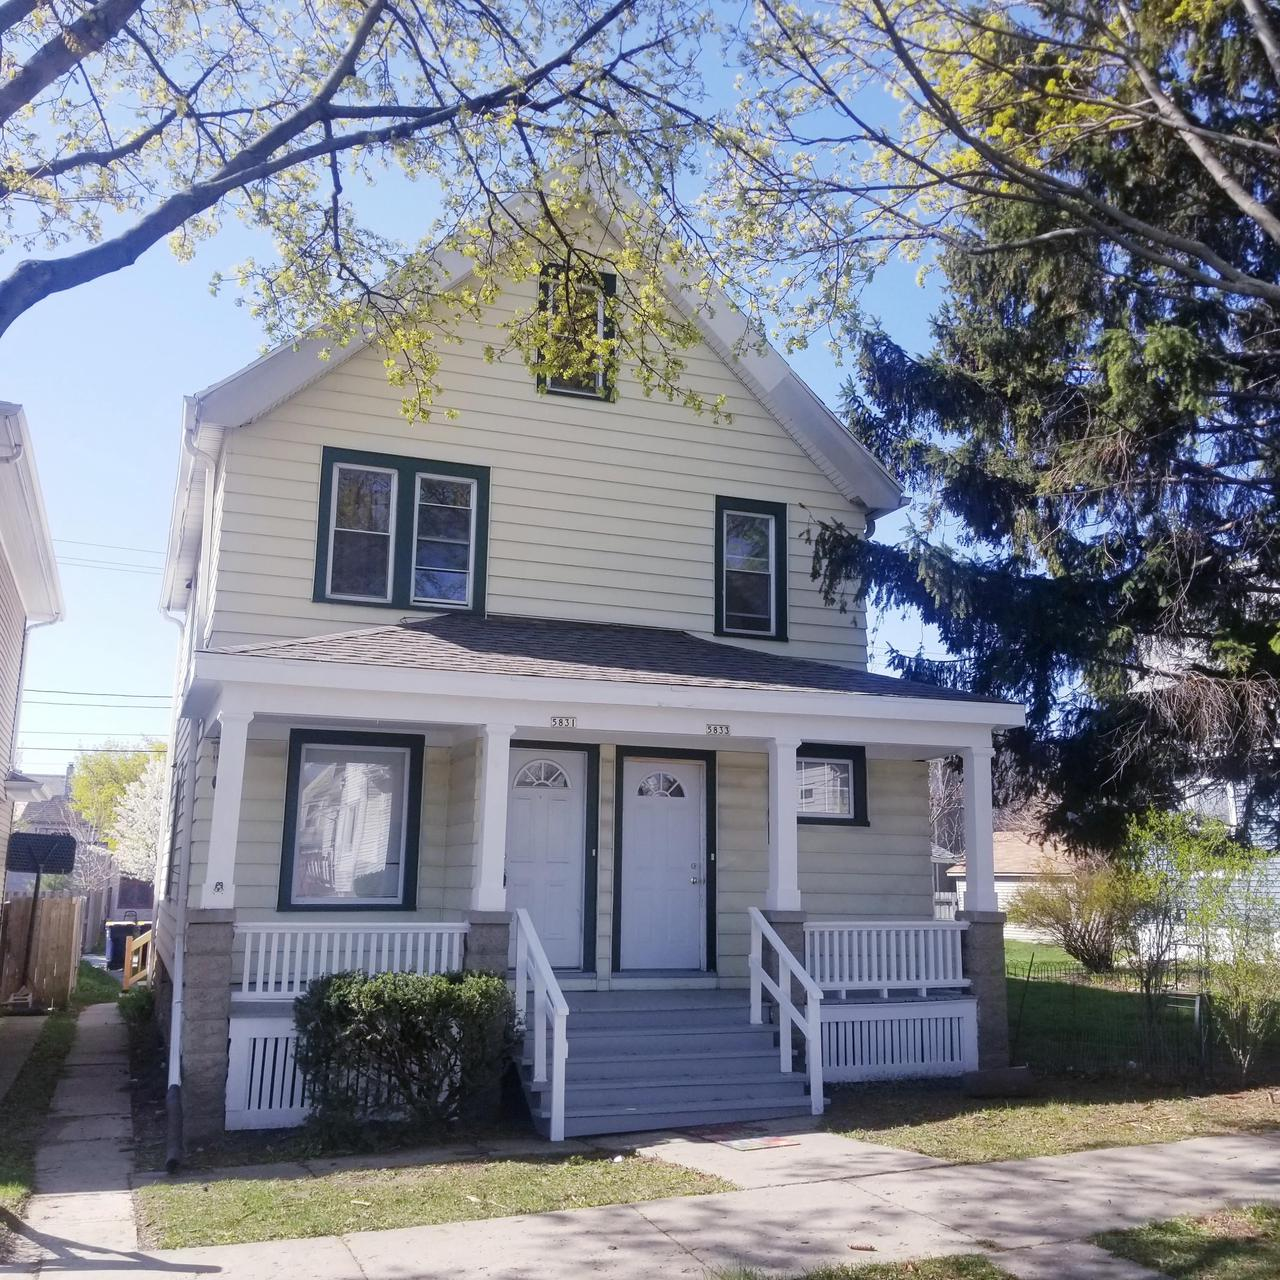 5831 W Madison St STREET 5833, WEST ALLIS, WI 53214